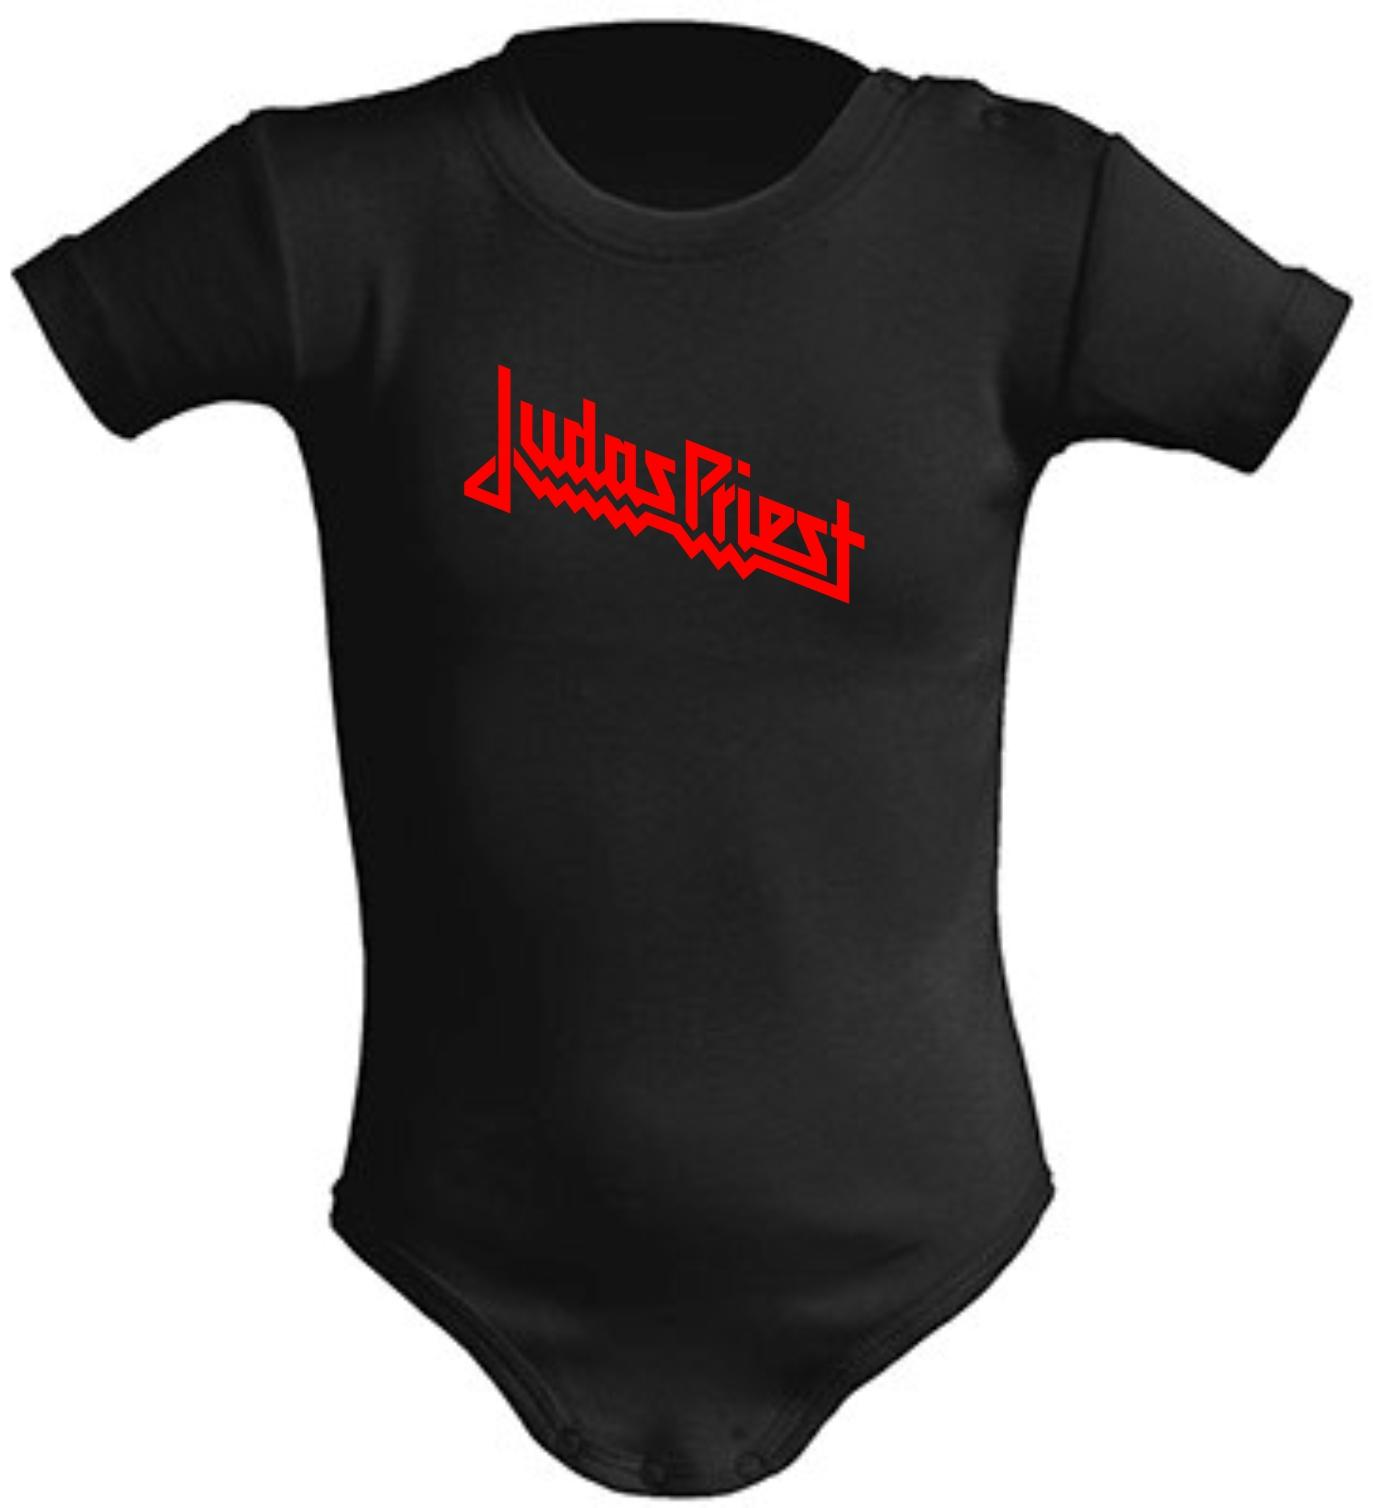 BODY DE BEBE JUDAS PRIEST